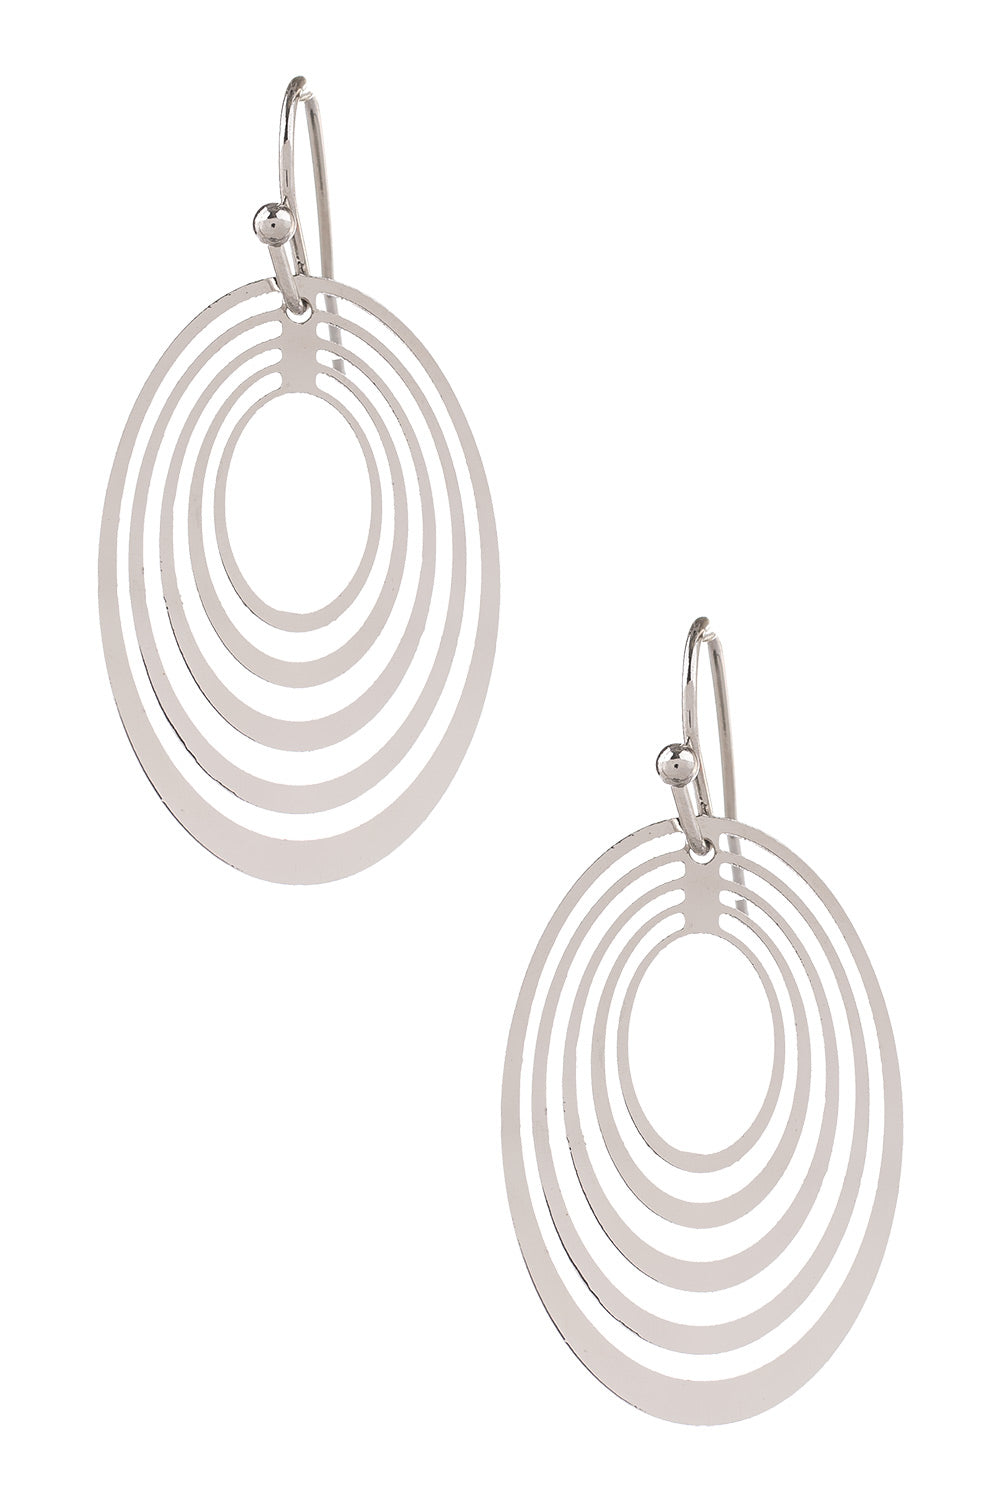 Type 4 Simple Illusion Earrings